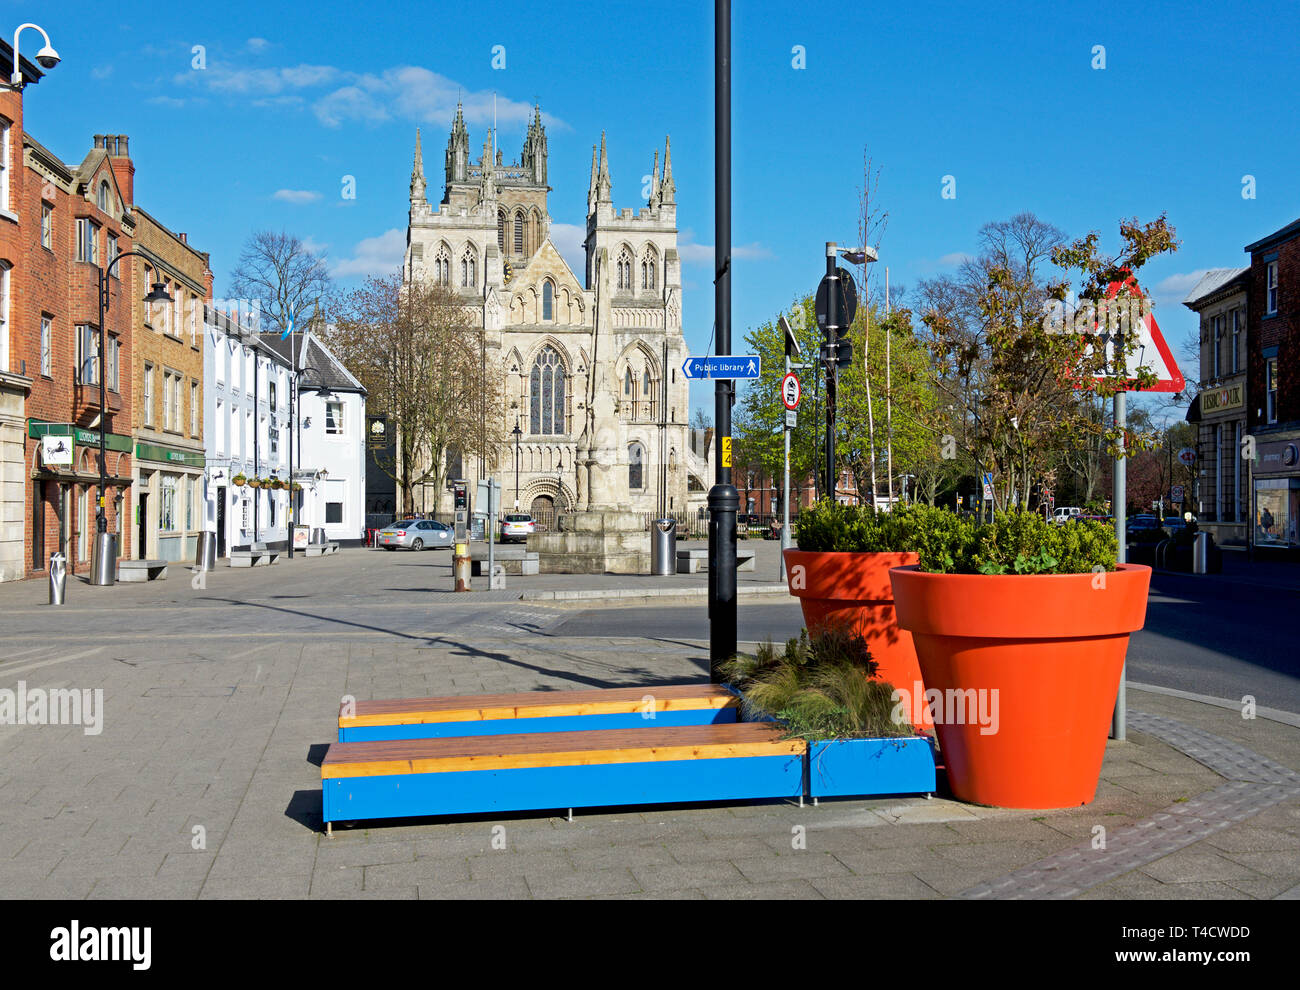 Selby Abbey, and street furniture, North Yorkshire, England UK - Stock Image